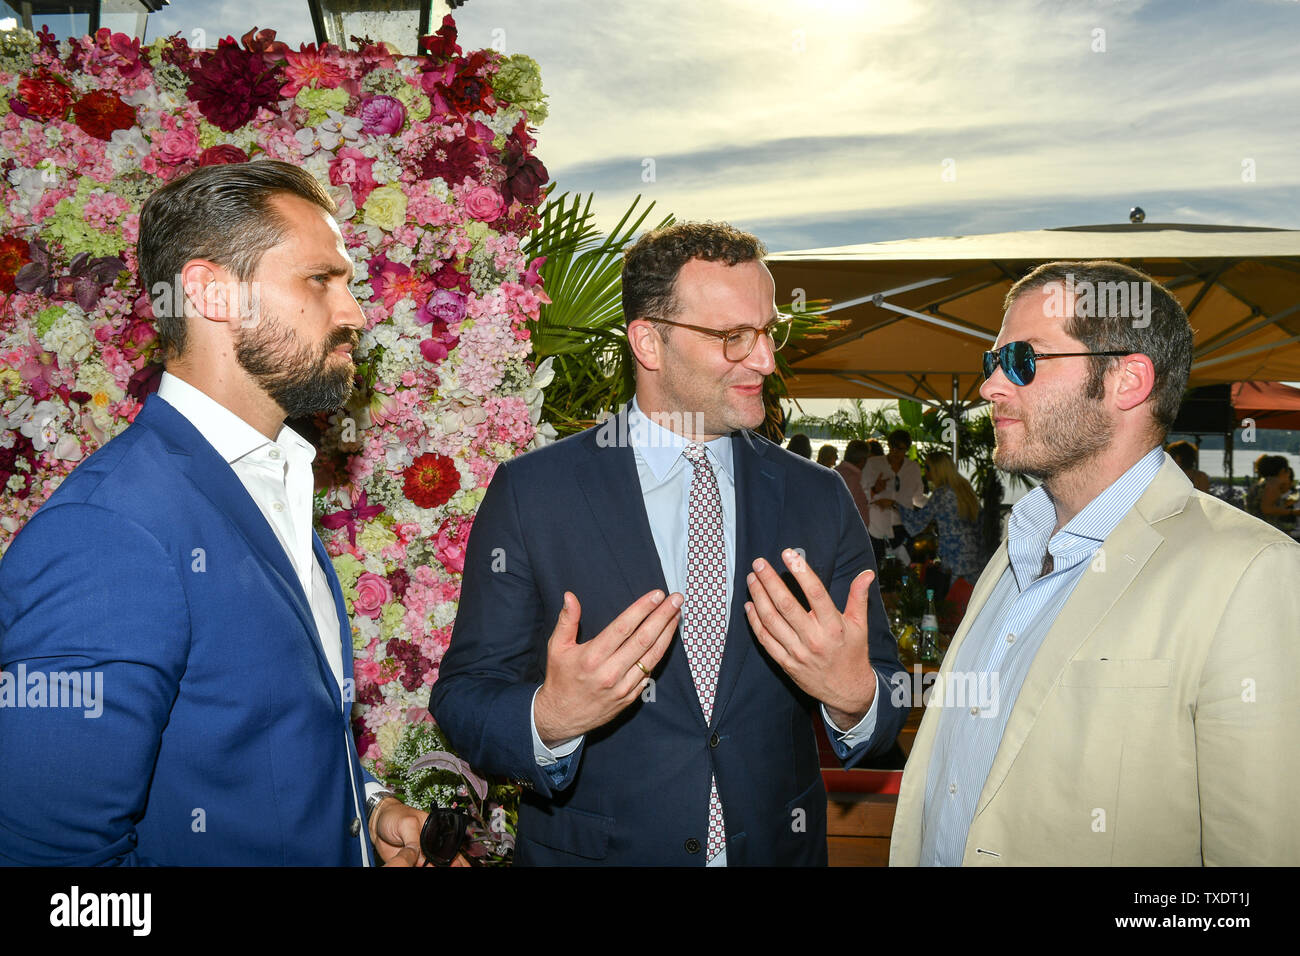 https www alamy com berlin germany 24th june 2019 jens spahn m cdu his life partner daniel funke l and julian reichelt editor in chief of the bild newspaper talk at the summer party of bild hilft ev ein herz fr kinder in the restaurant wannseeterrassen credit jens kalaenedpa zentralbilddpaalamy live news image257230446 html